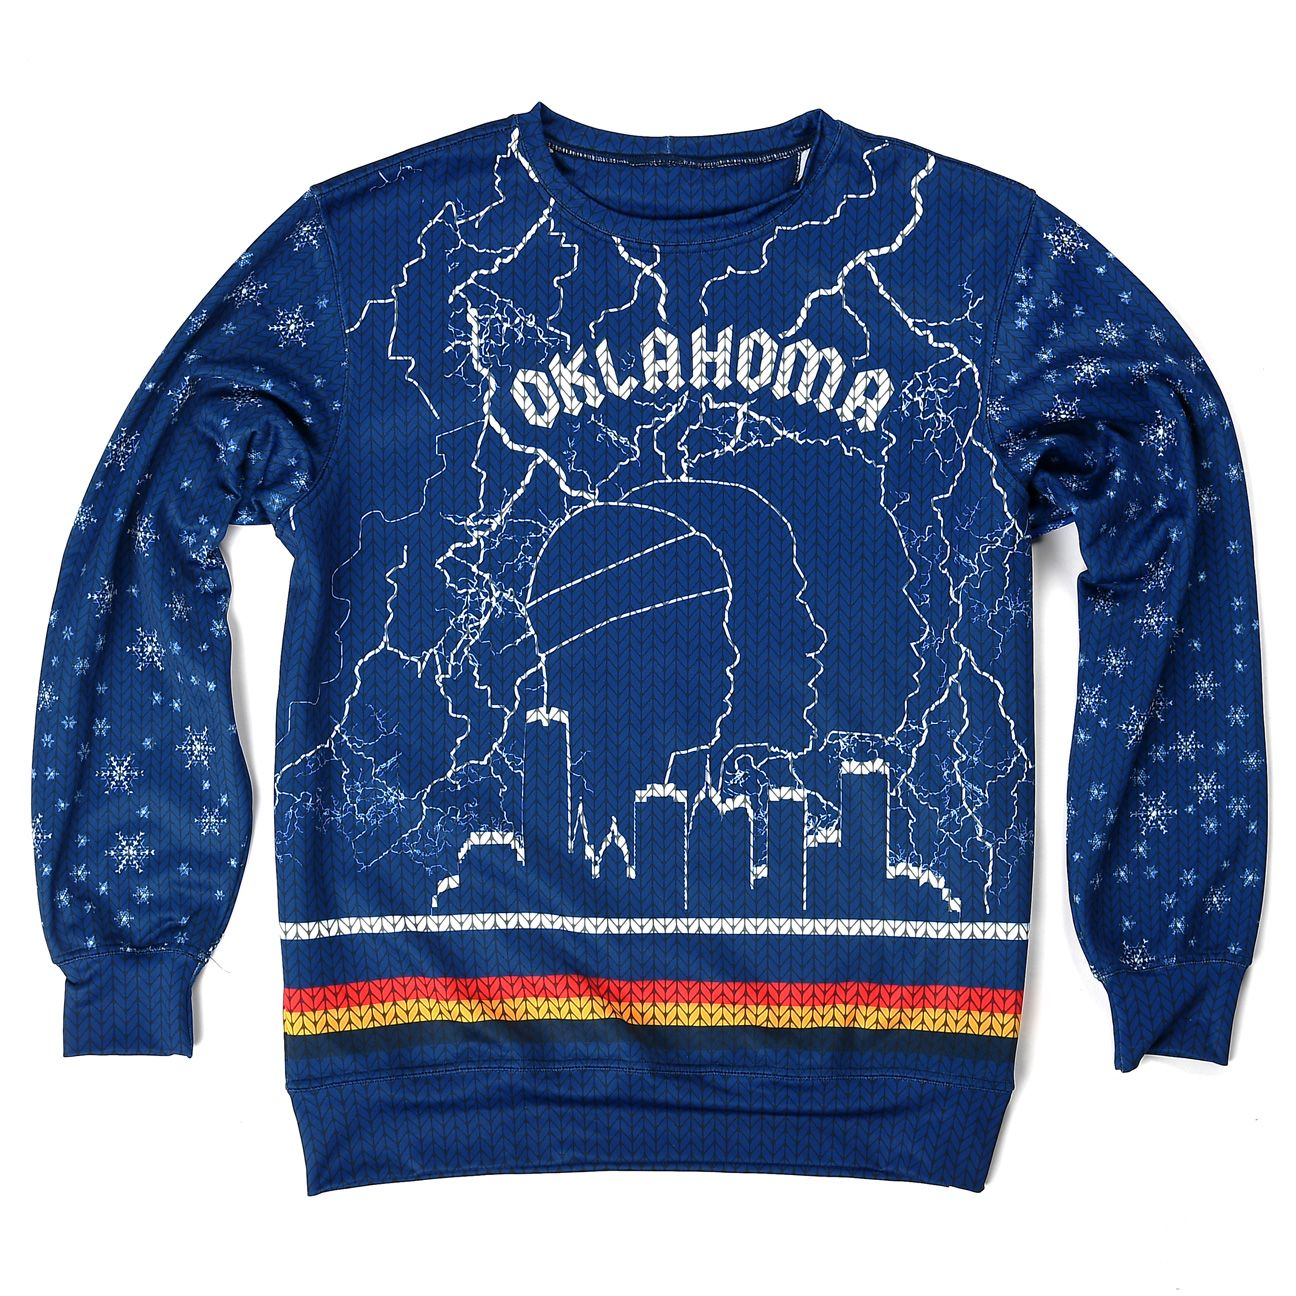 Thunders ugly sweater